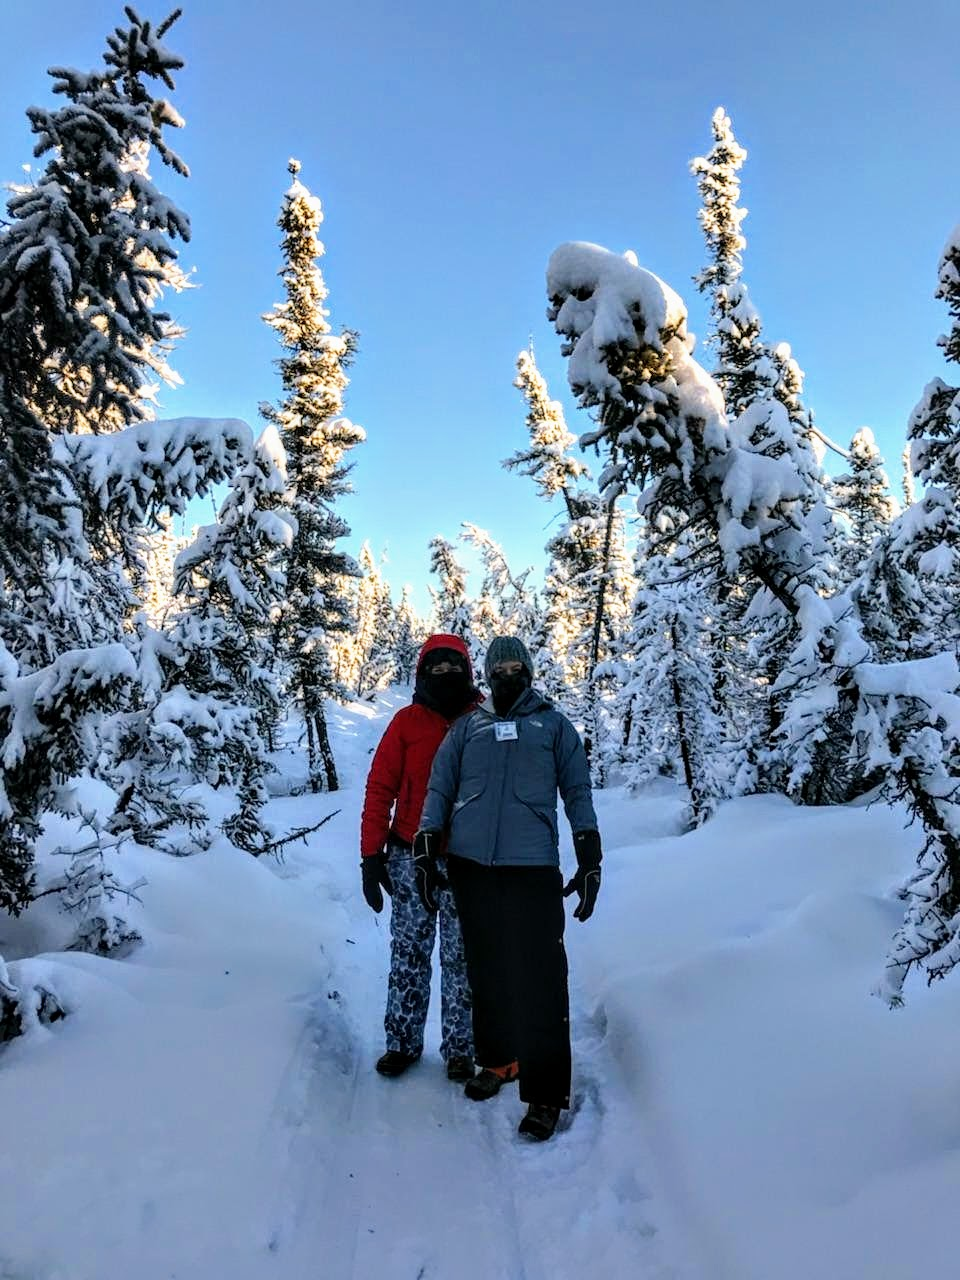 No problem hiking on groomed trails